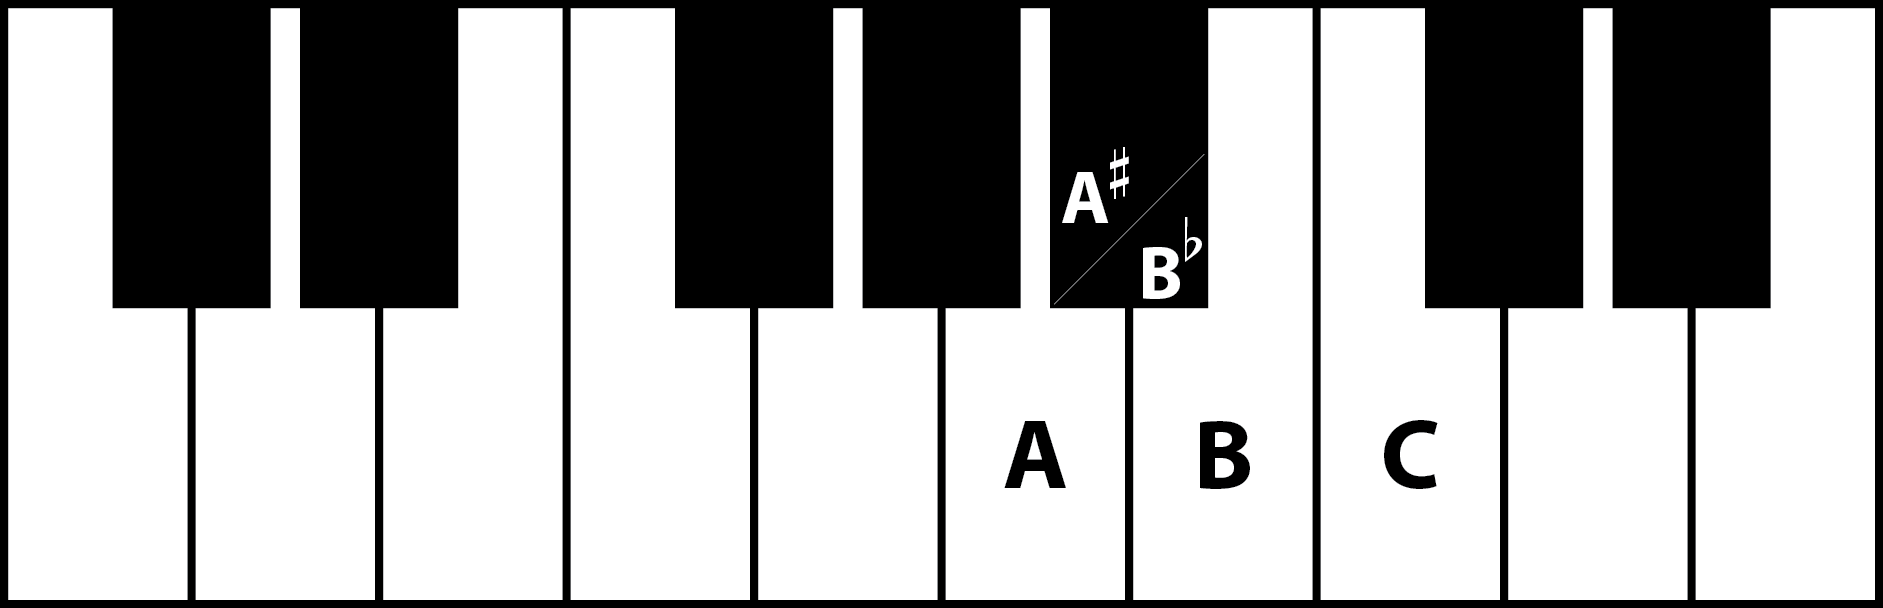 how to remember minor key signatures